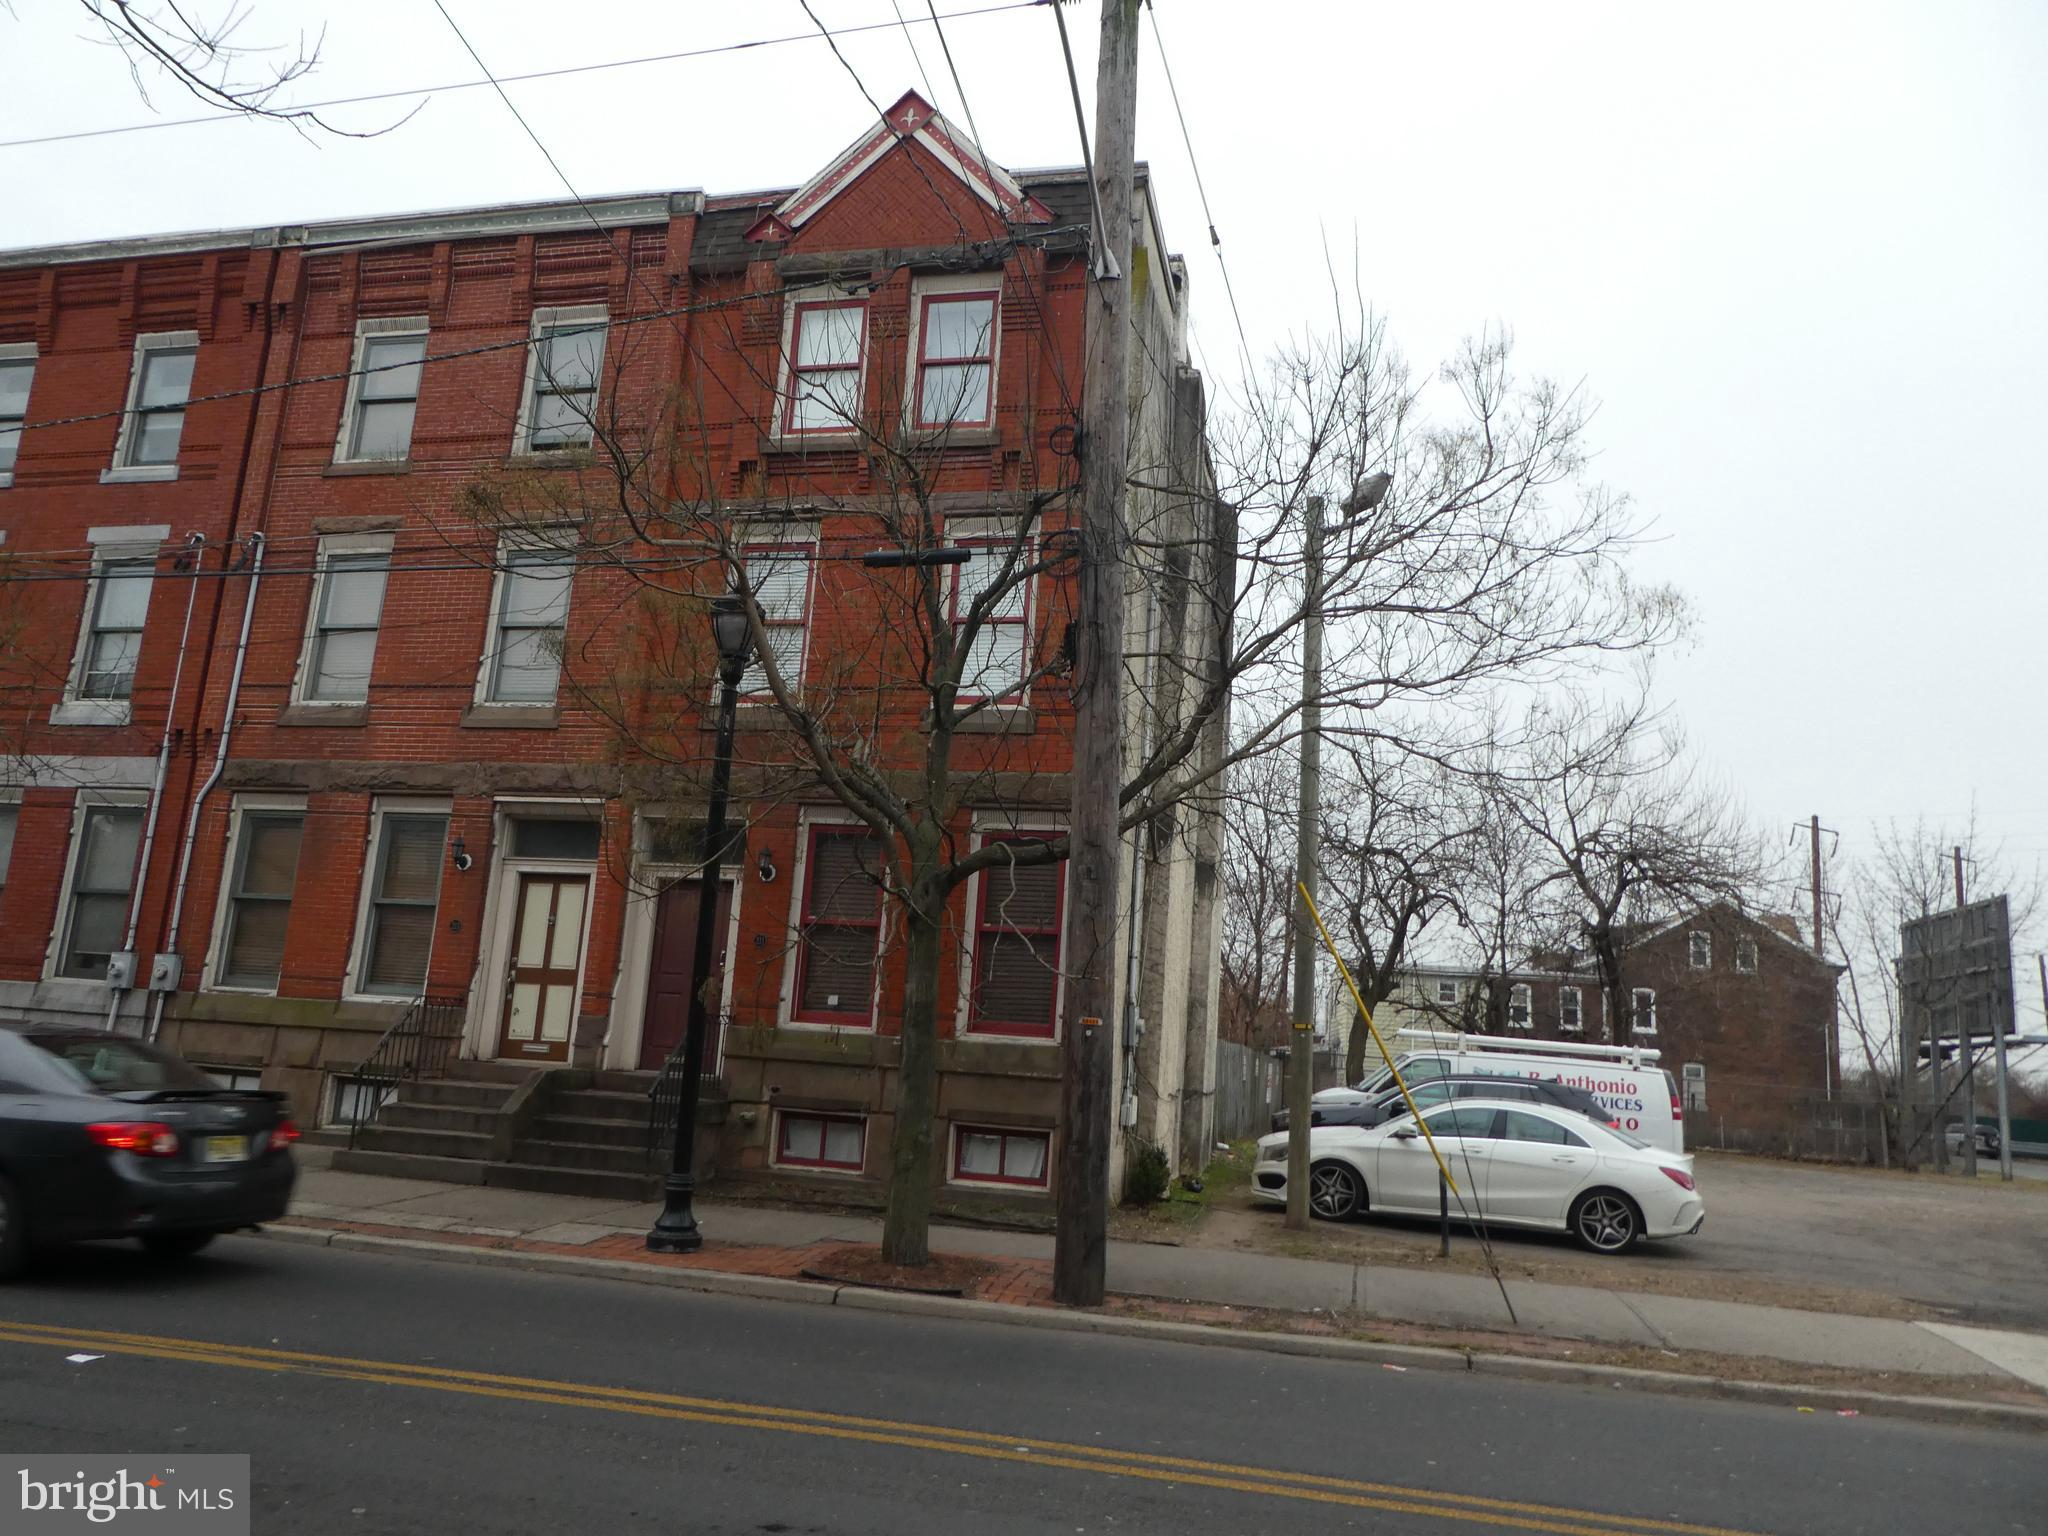 211 S CLINTON AVENUE, TRENTON, NJ 08609